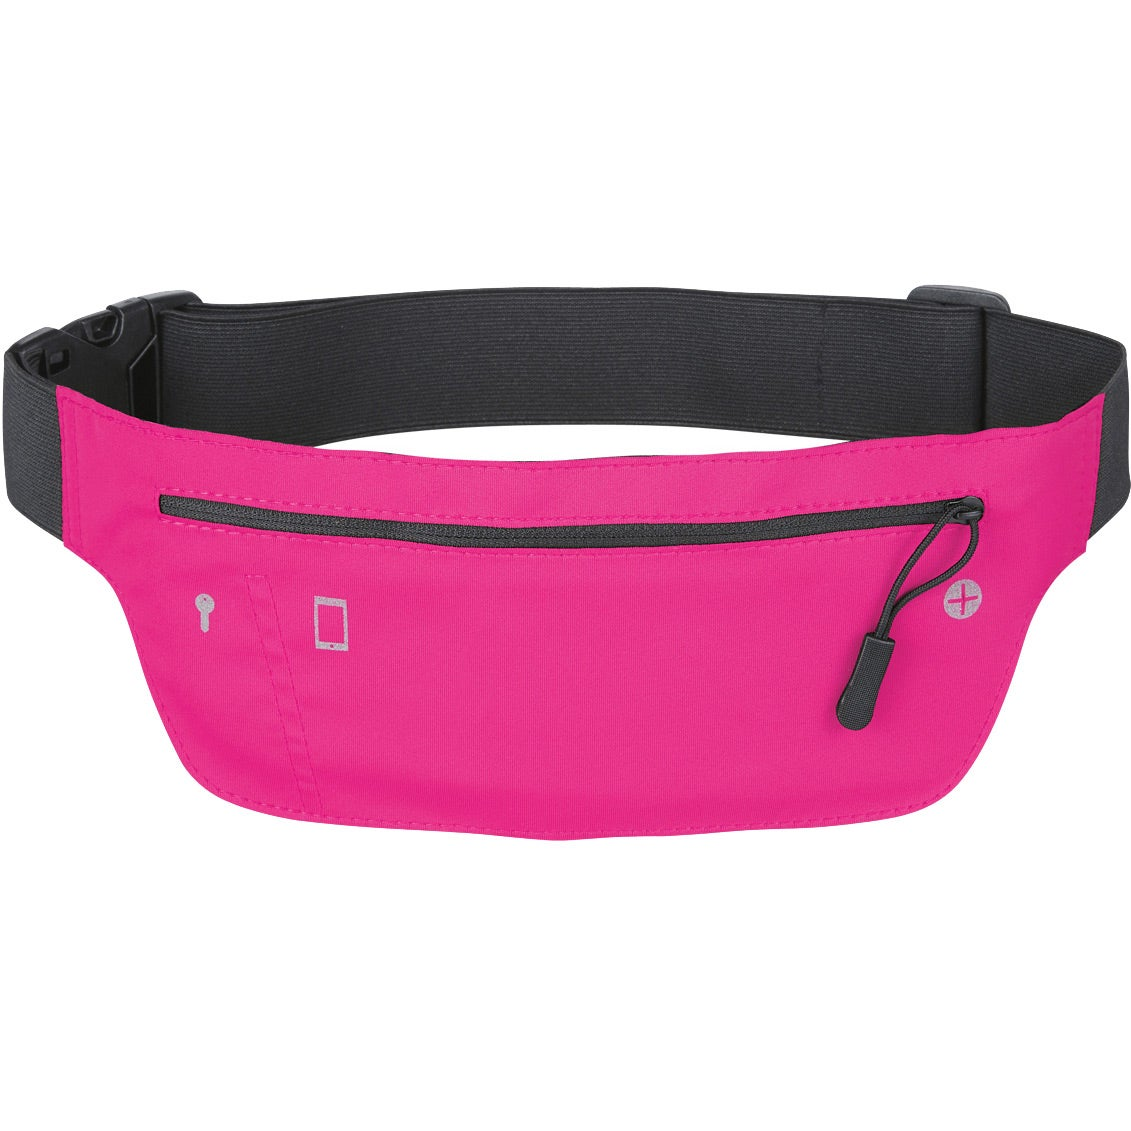 Fanny pack dating